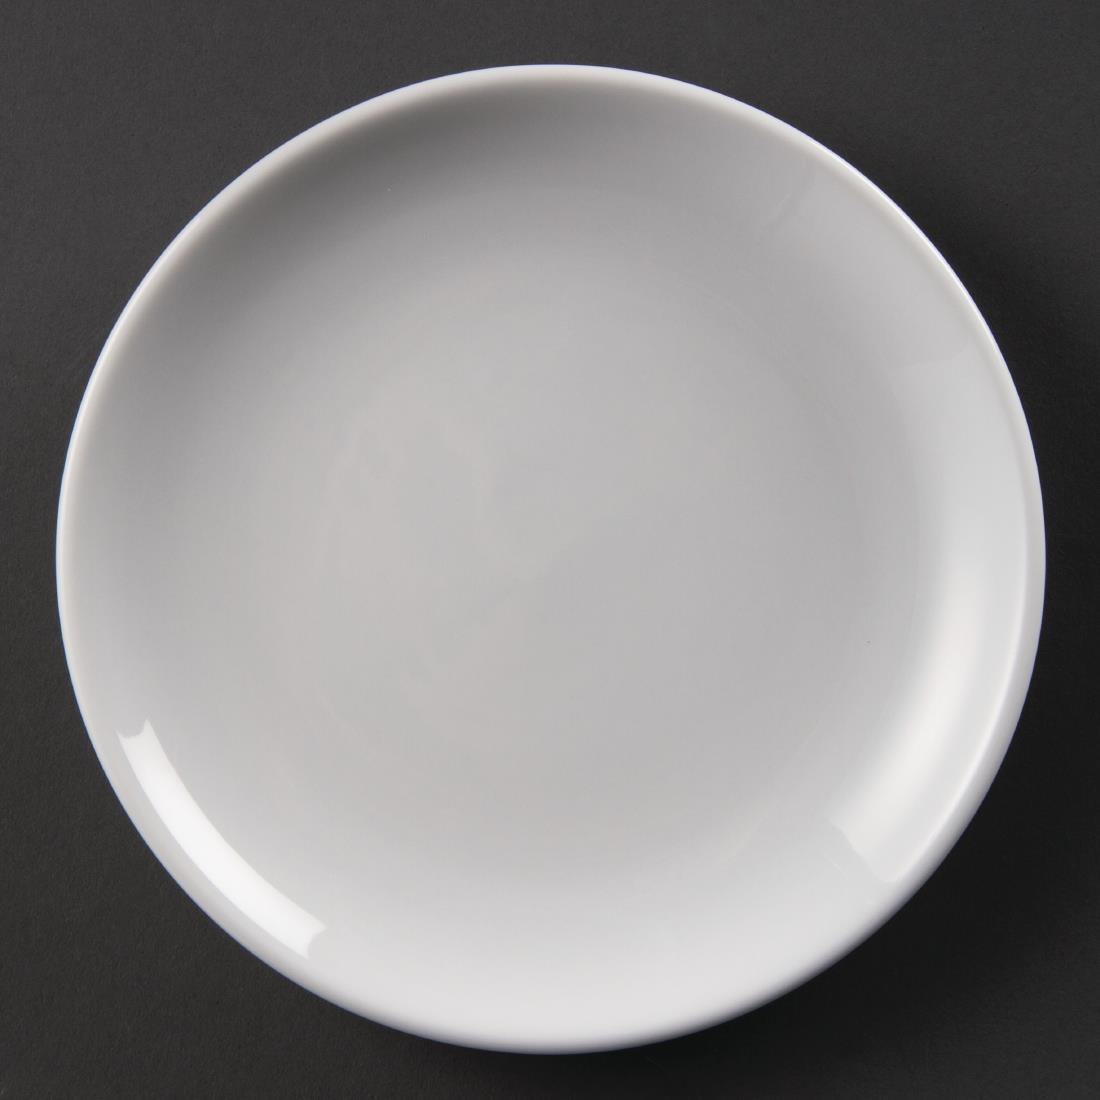 Olympia Whiteware Coupe Plates 180mm